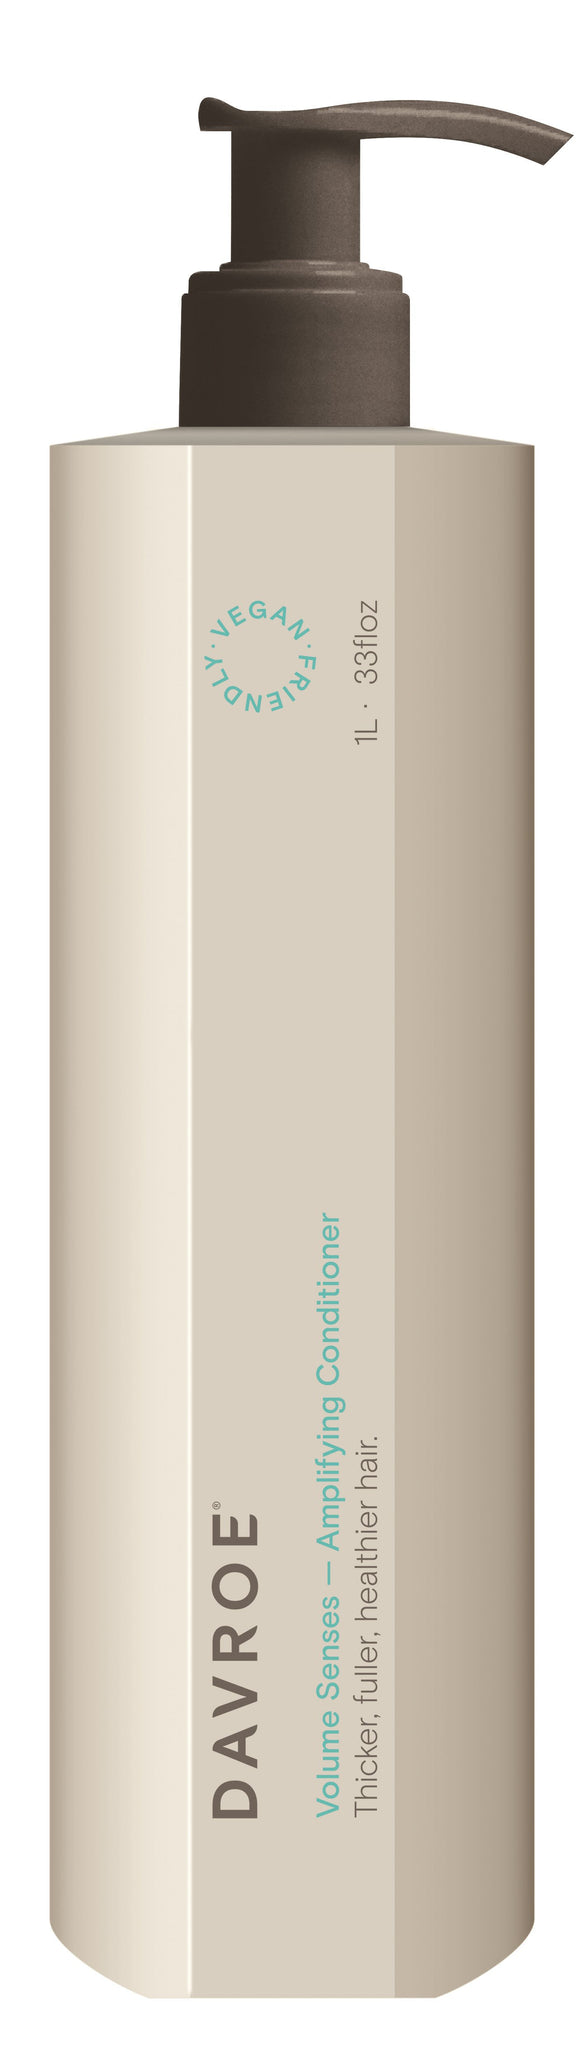 Davroe Volume Senses Amplifying Conditioner 1 Litre